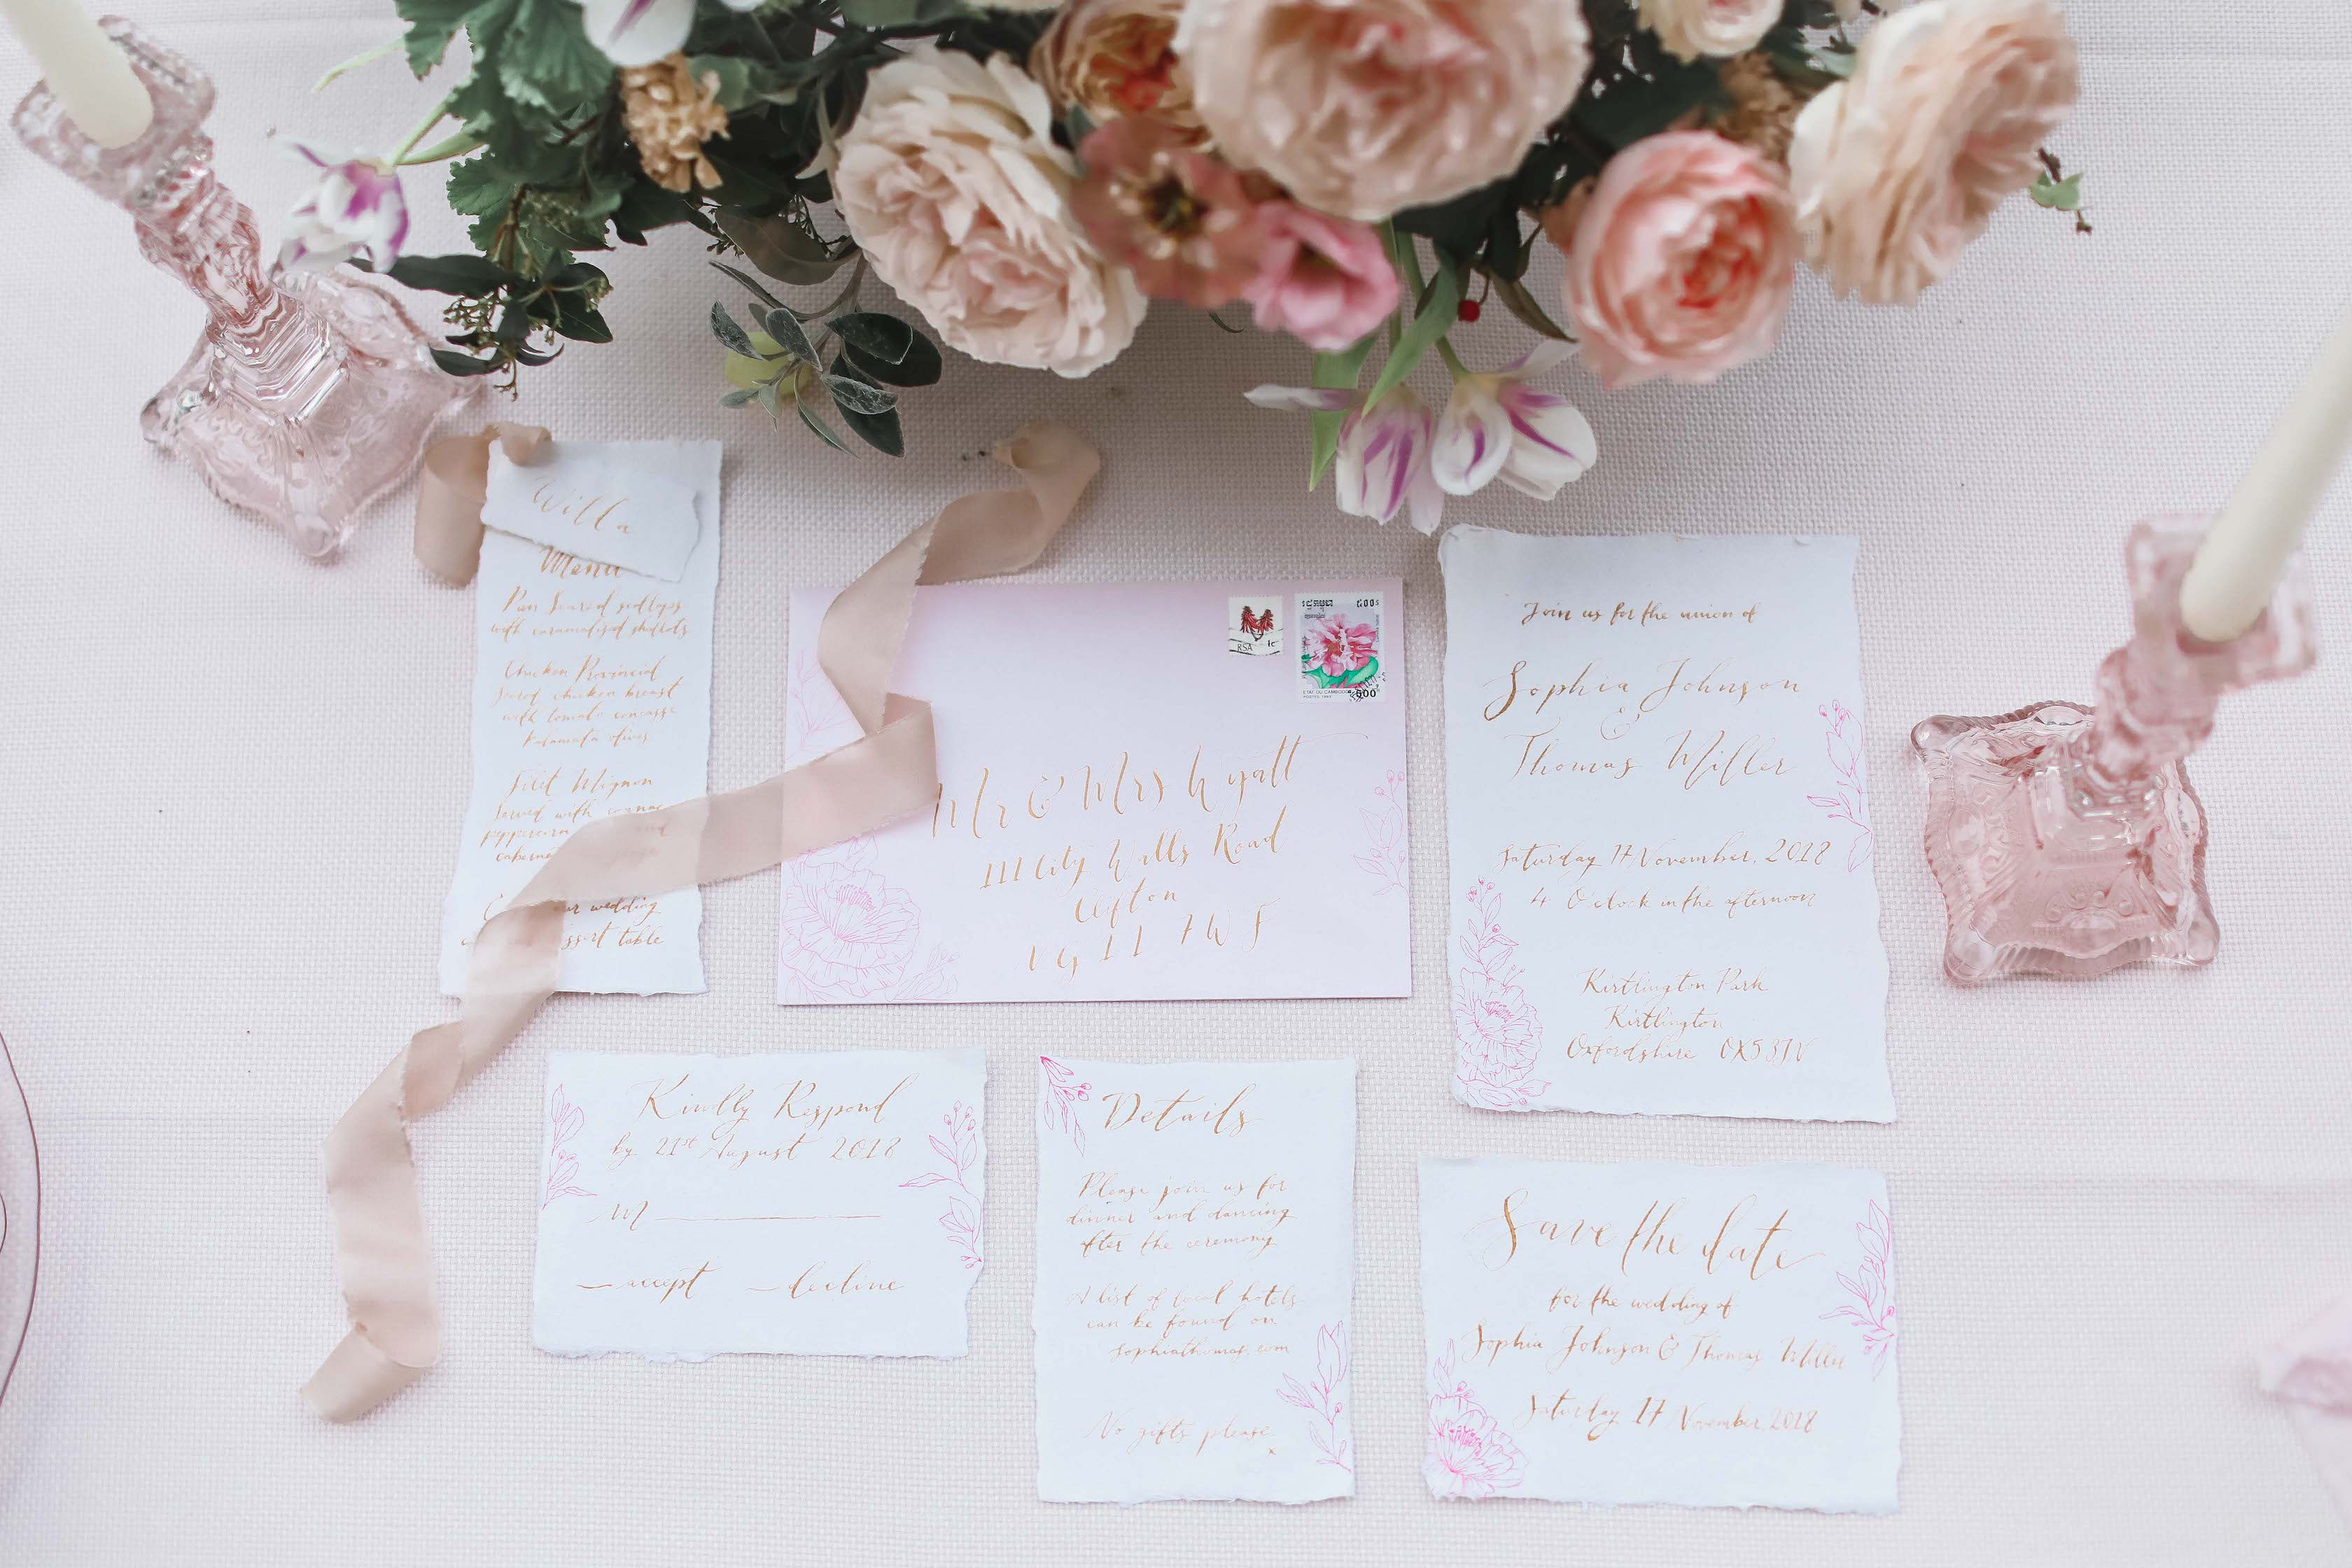 Stationery Design - Blush Pinks - Gold Caligraphy